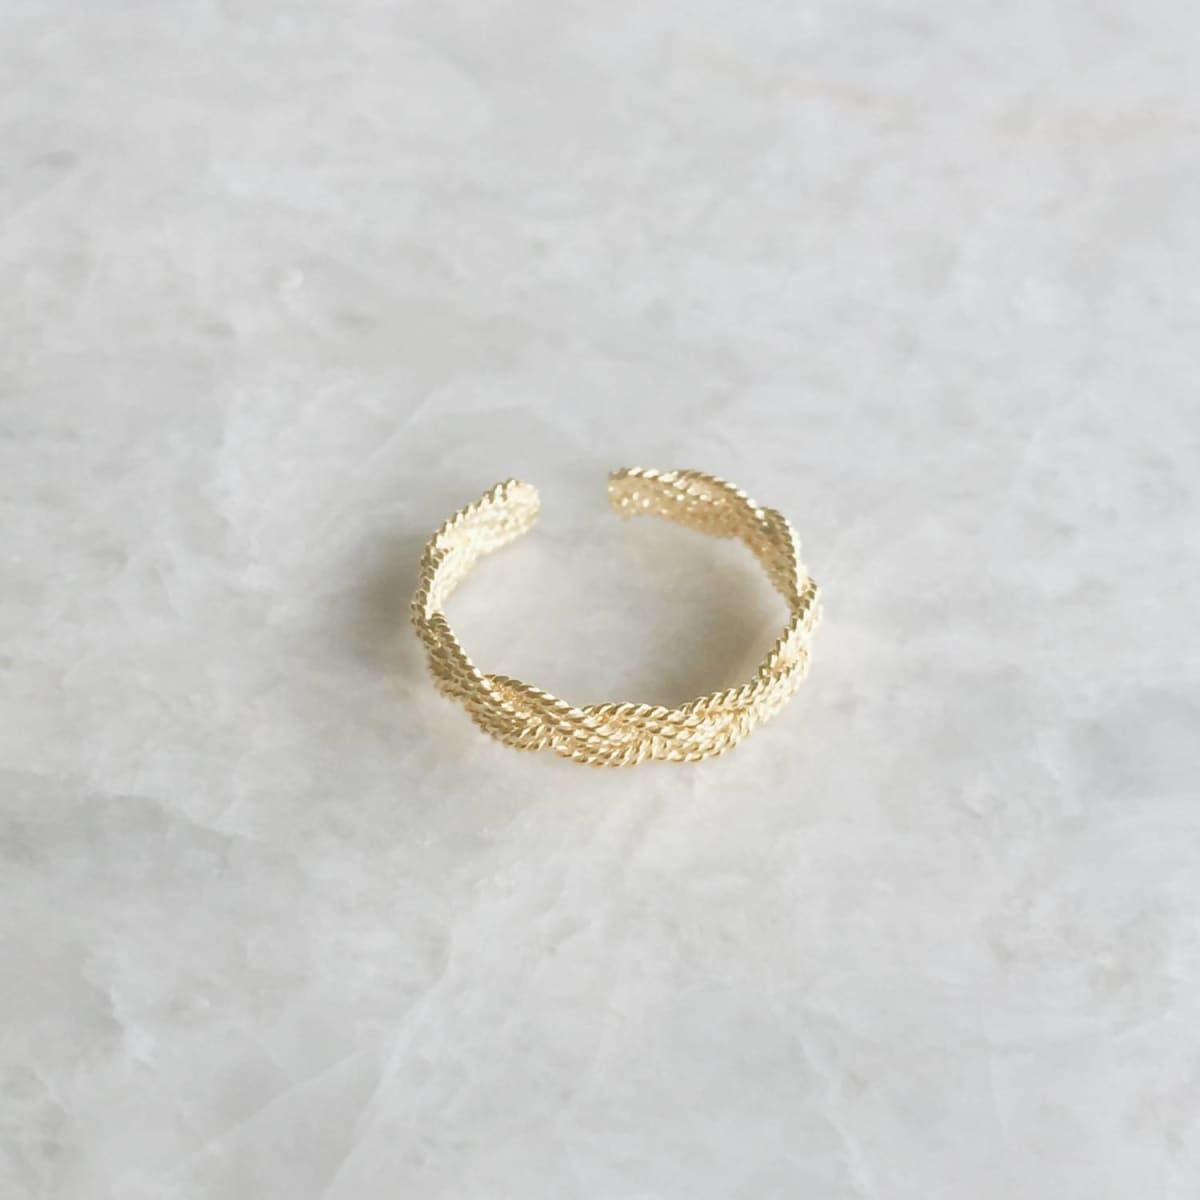 Toe Rings Braided gold infinity toe ring Gold plated silver braided Minimal Minimalist jewelry Boho (TR58) Thai Jewelry - by SilverCartel